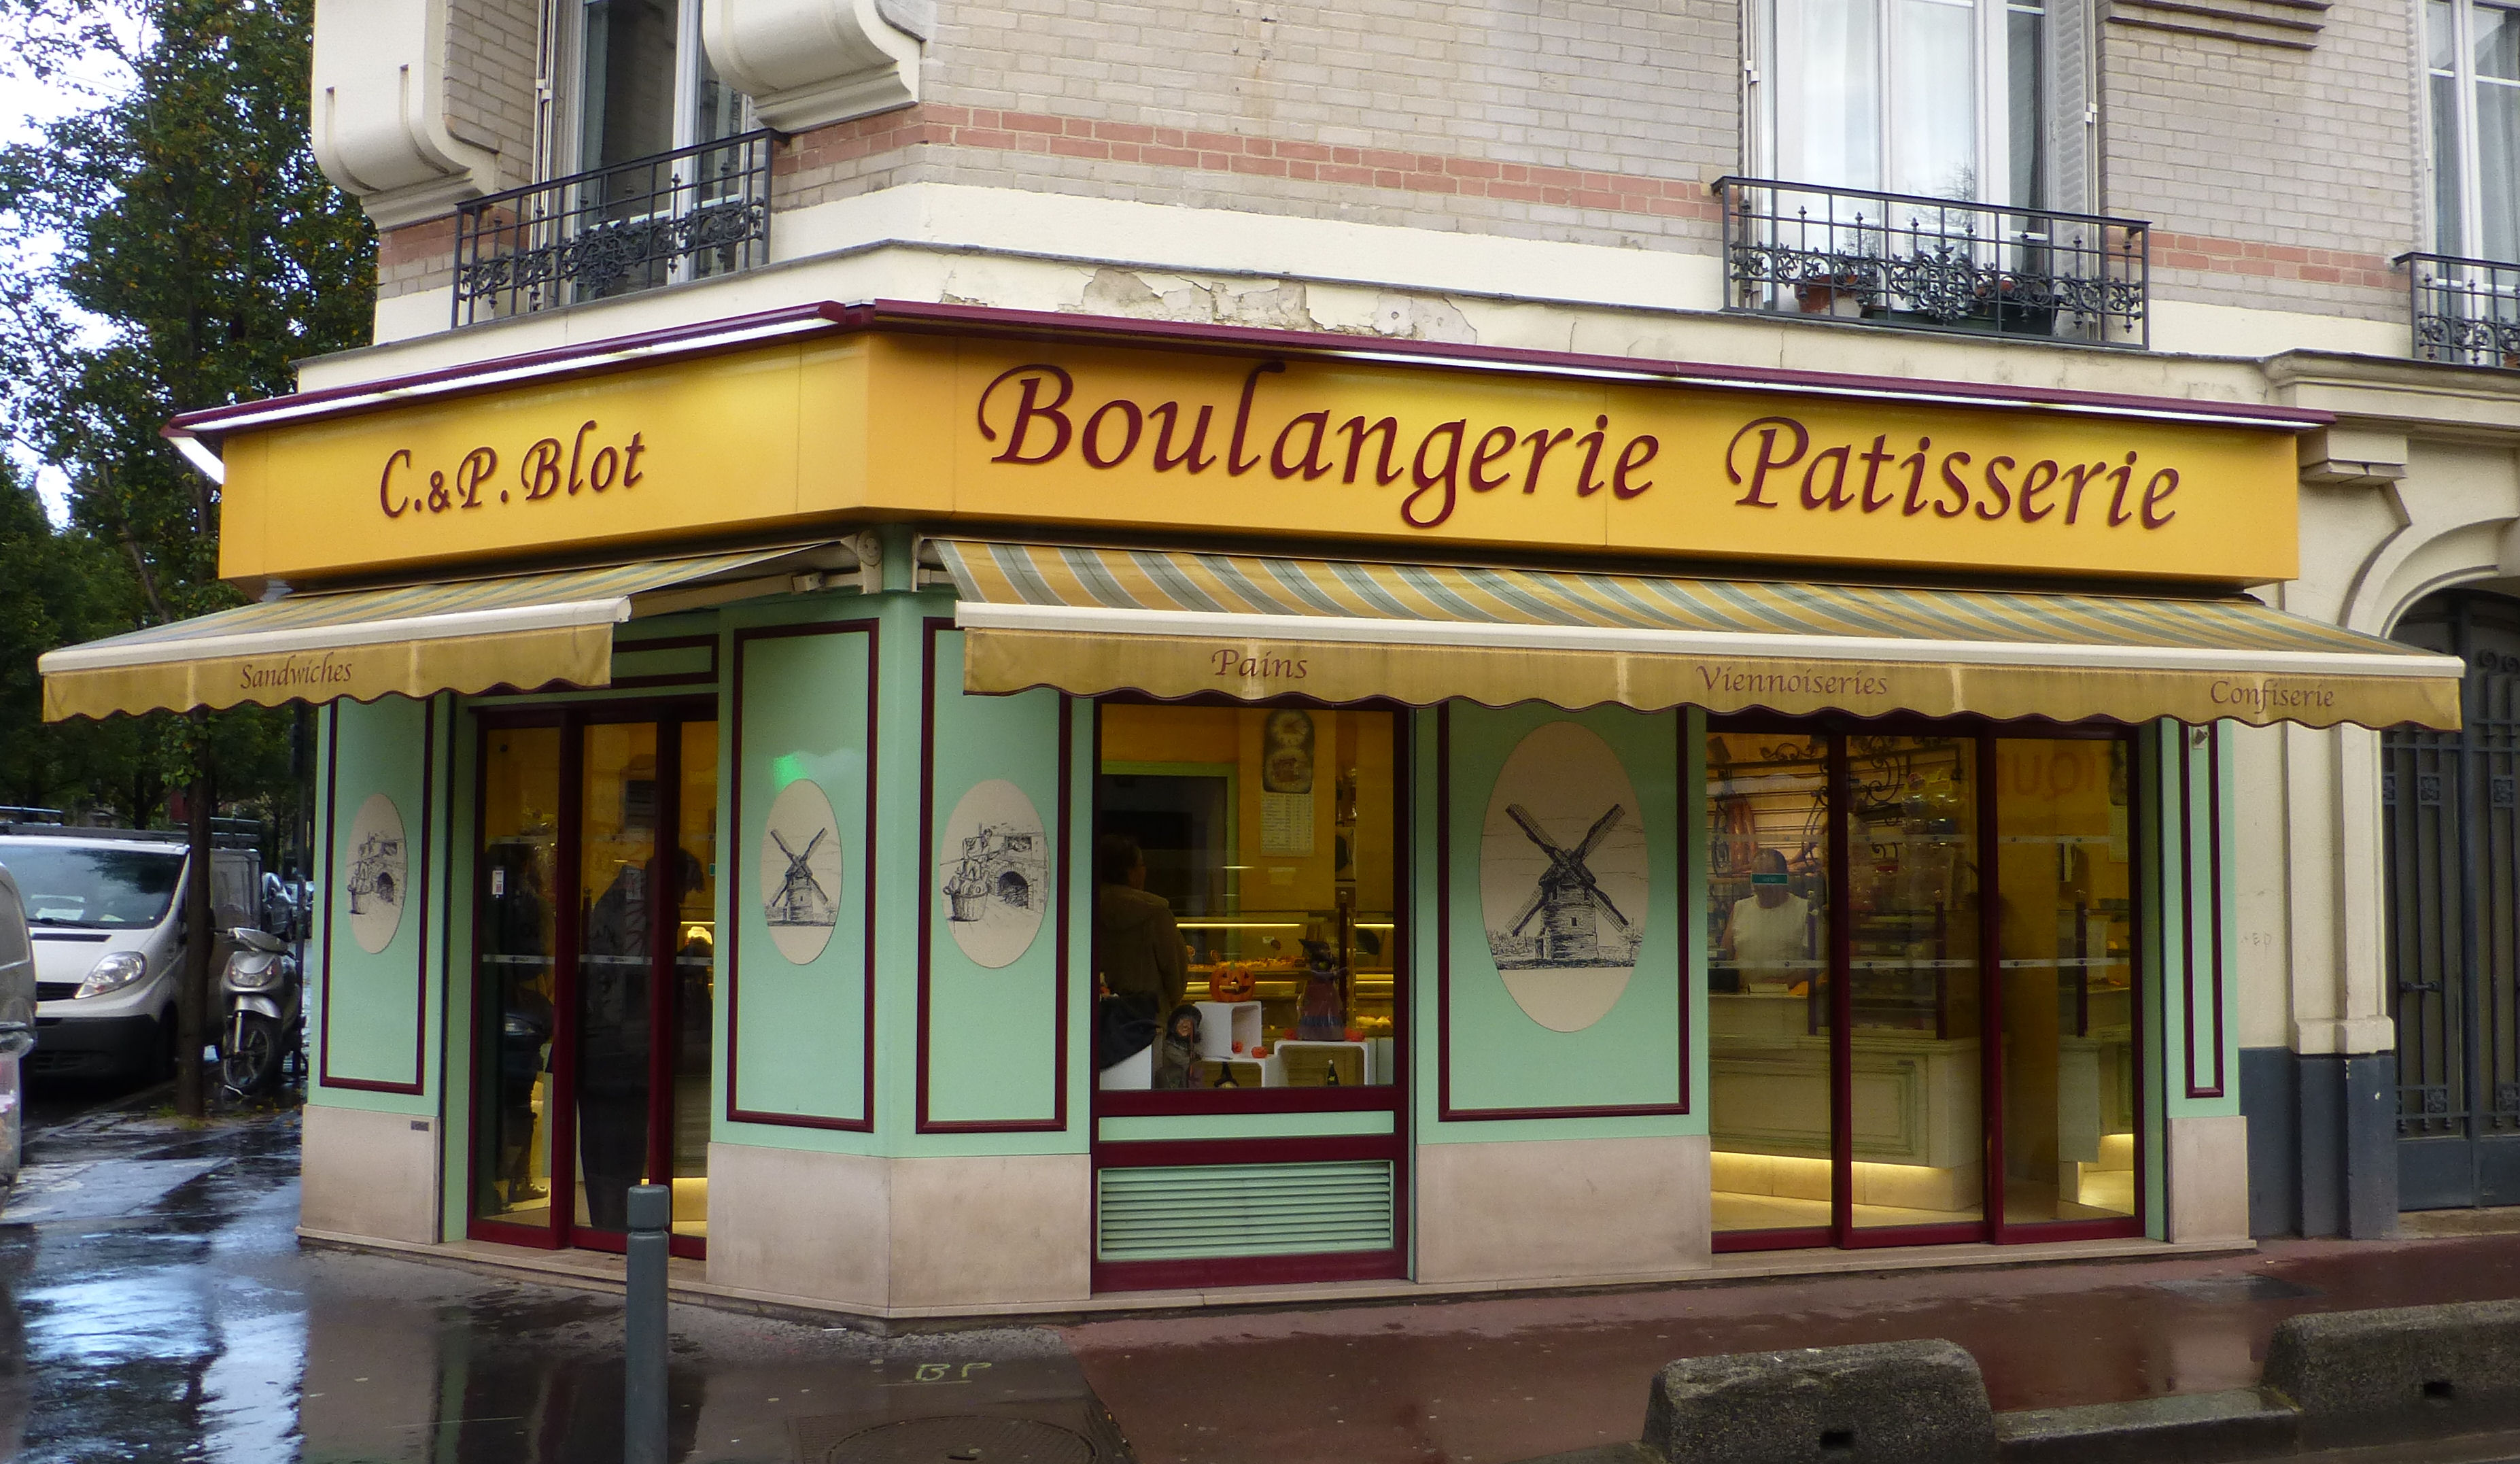 A Hands-on Pastry Workshop in the Town of Saint-Ouen « Paris Insights – The Blog